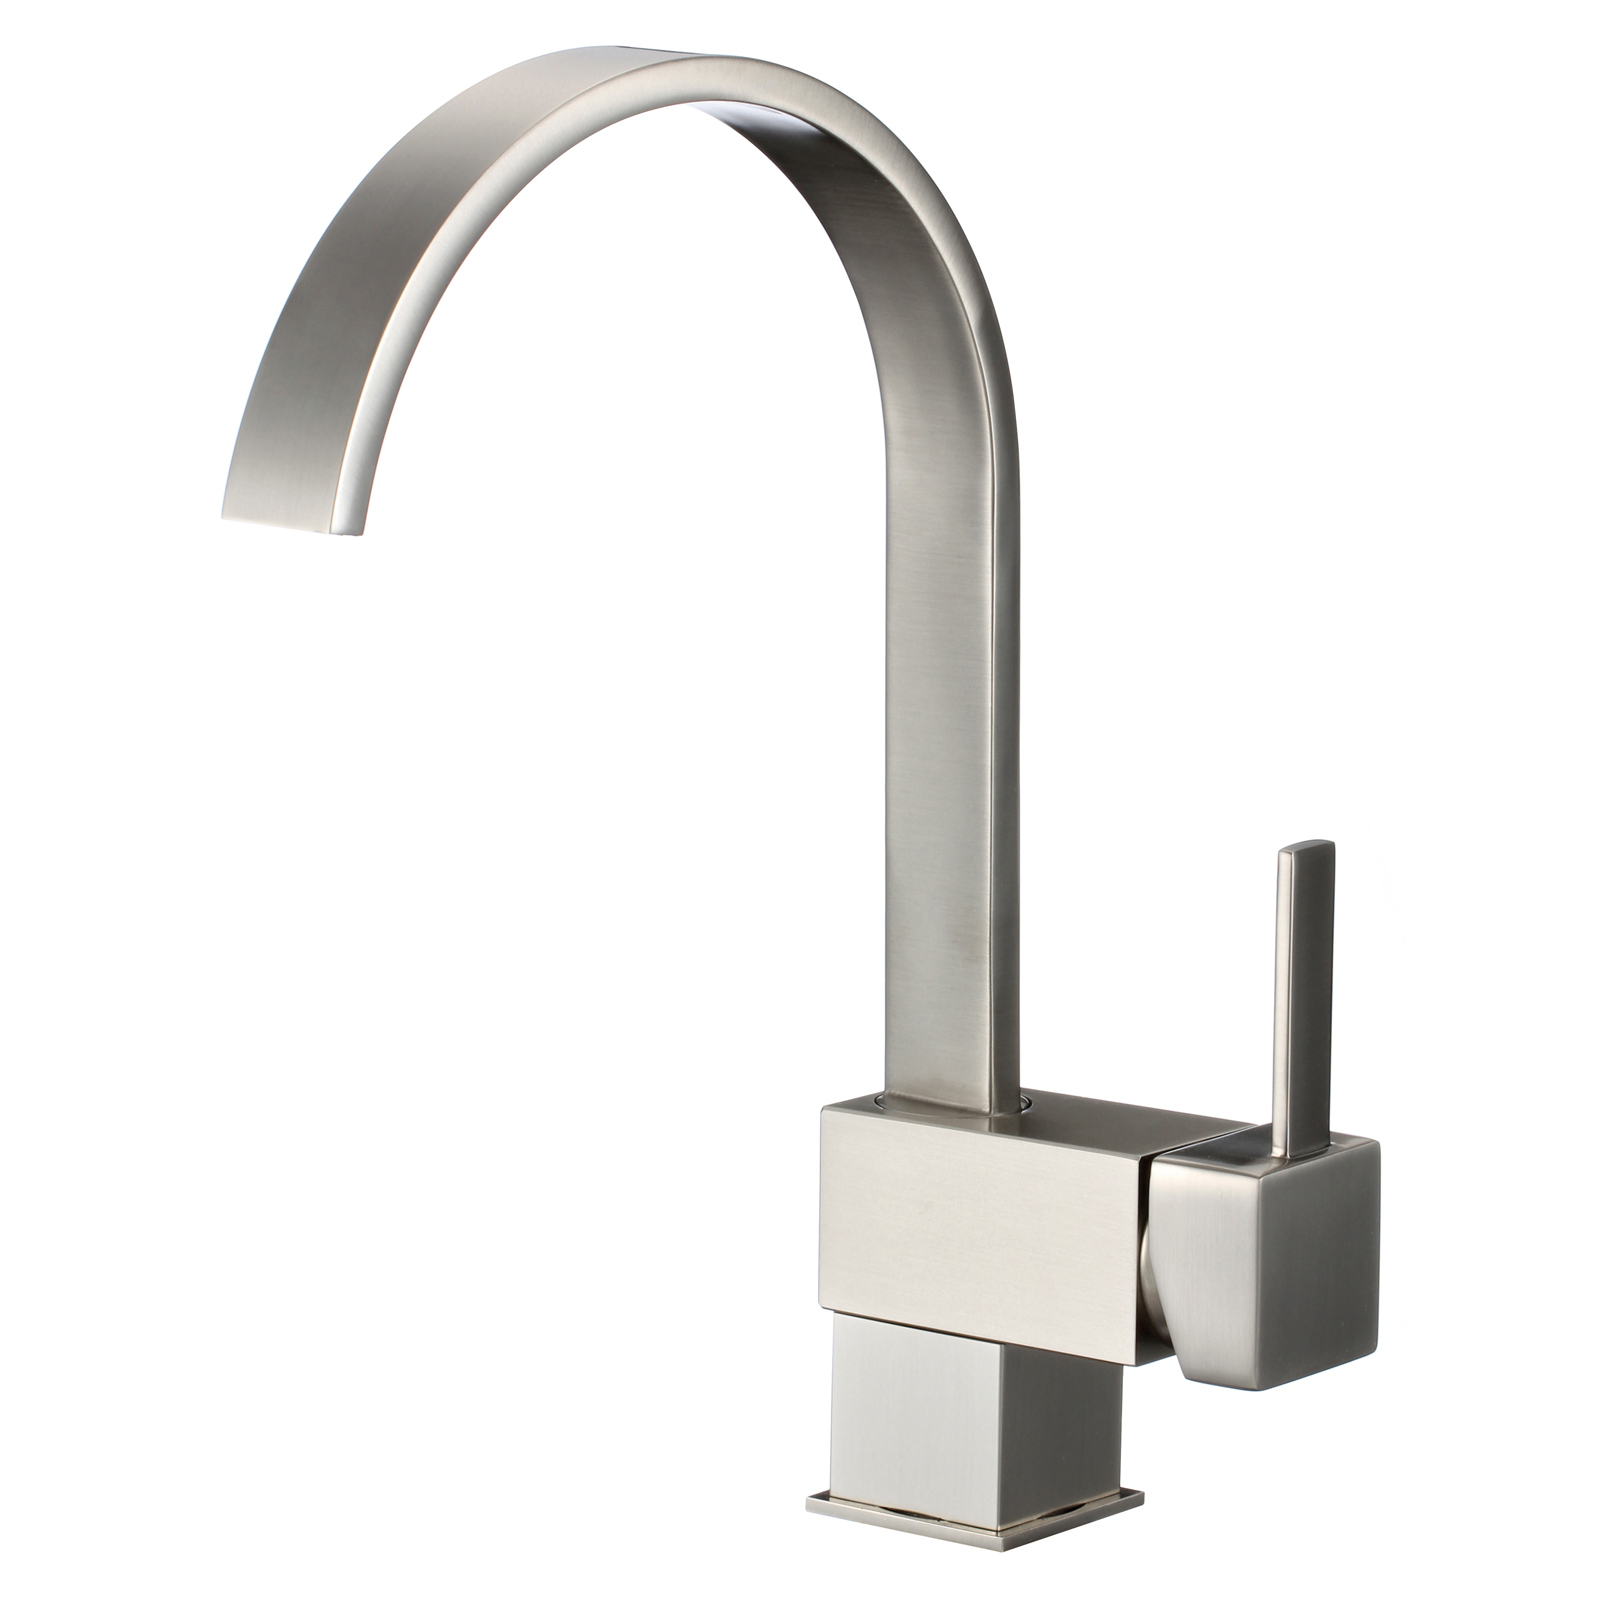 13 Modern Kitchen Bathroom Sink Faucet One Hole: designer kitchen faucets